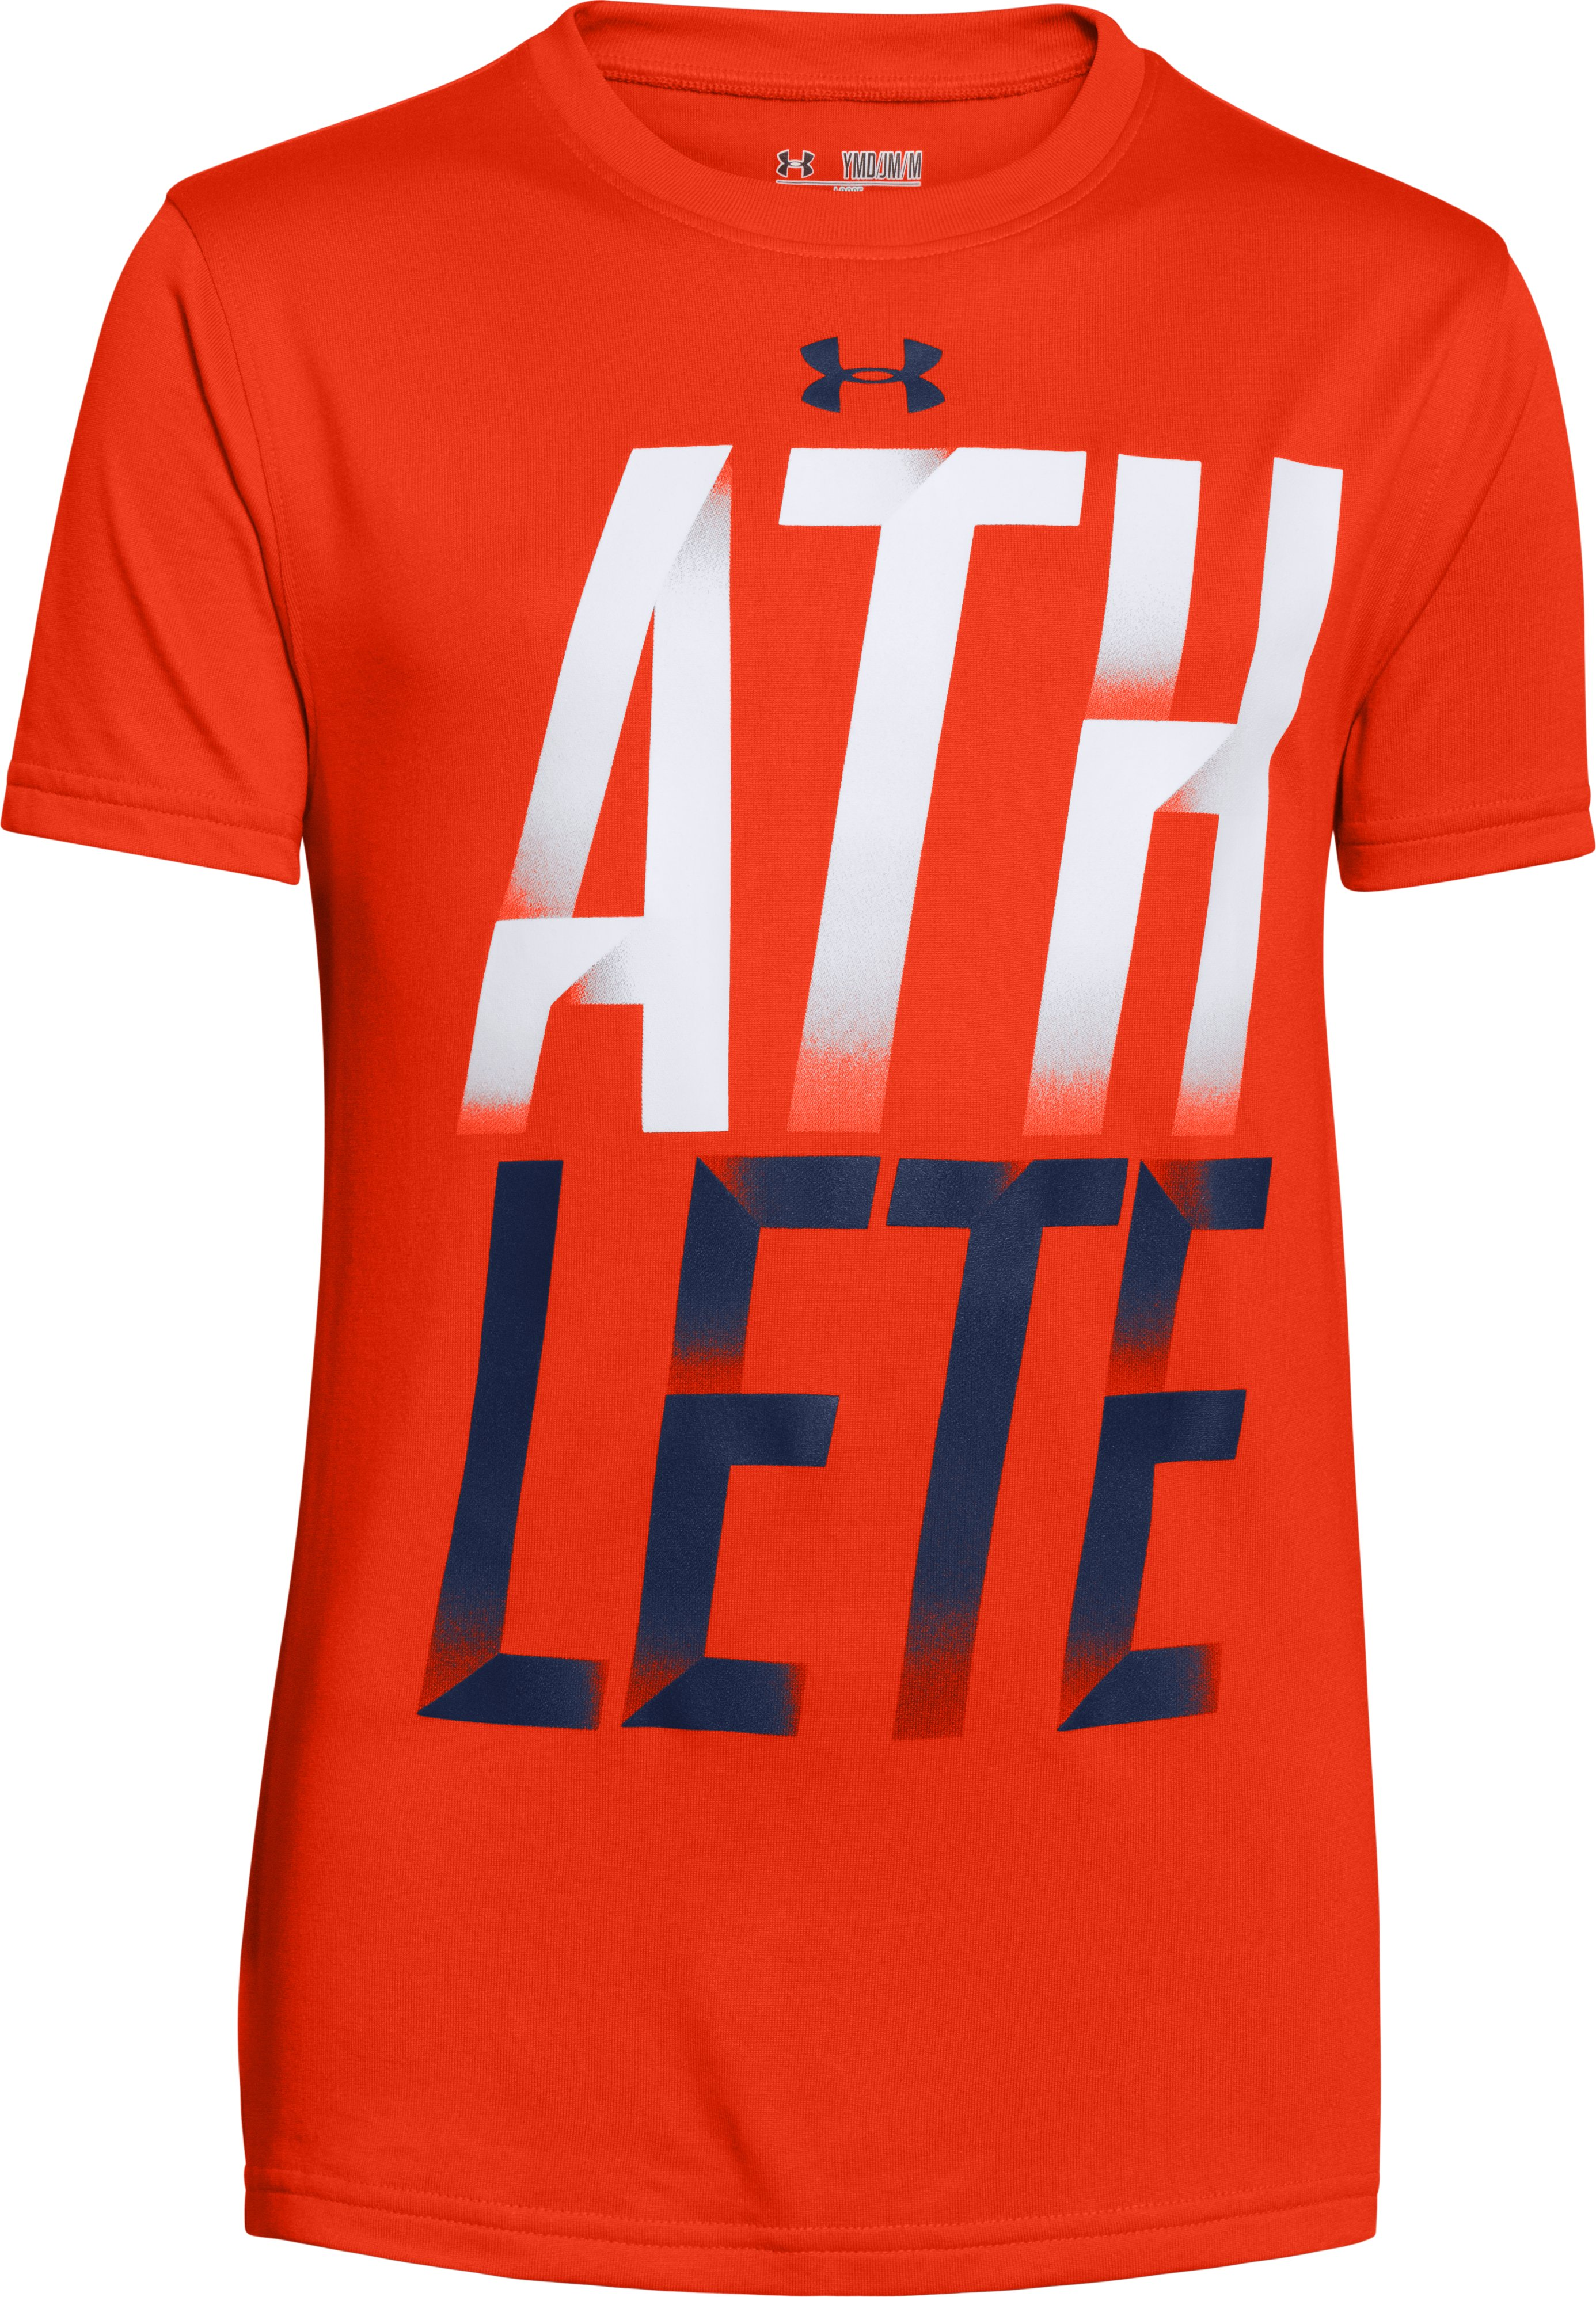 Boys' UA Athlete T-Shirt, Volcano